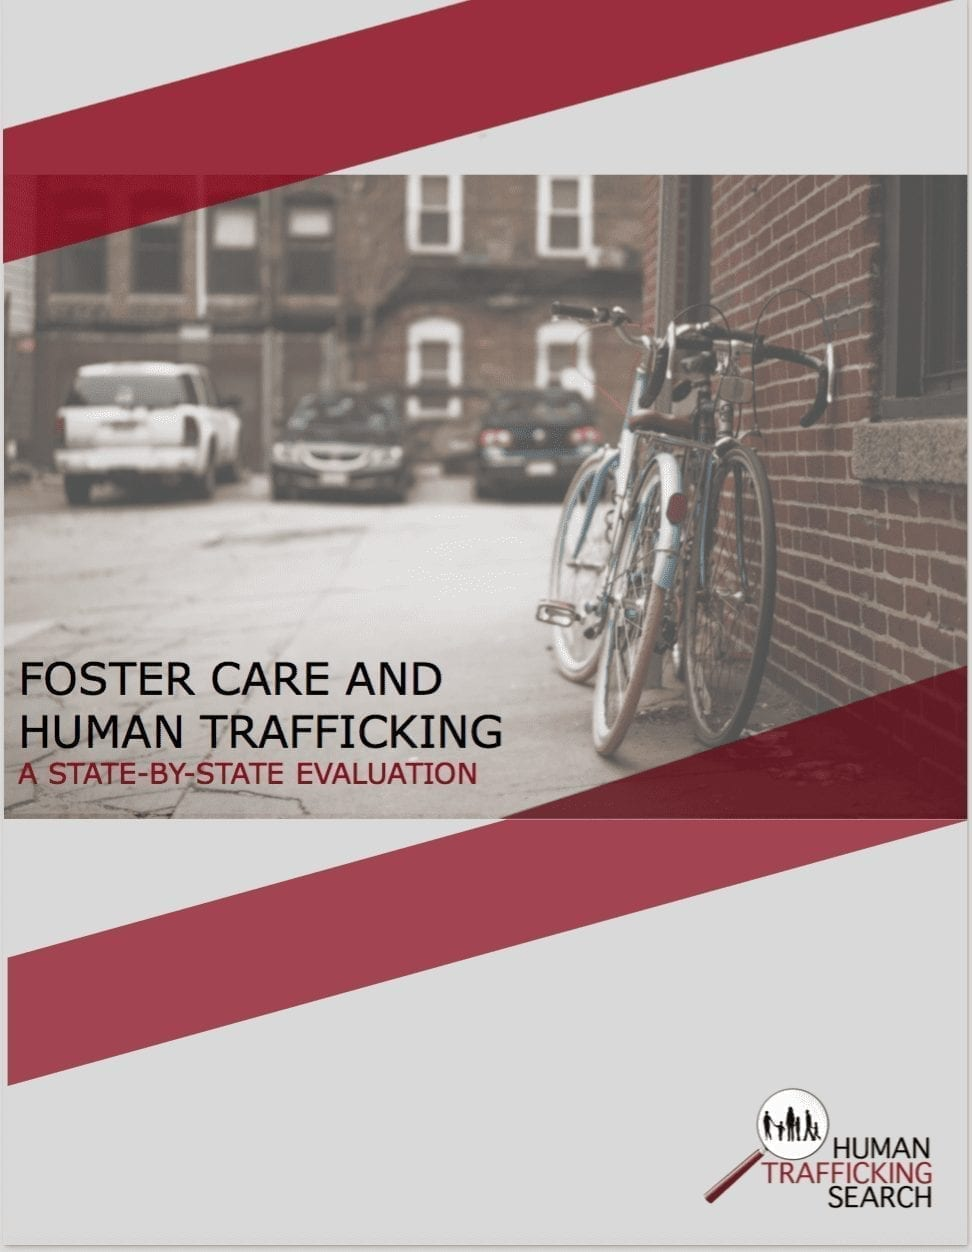 Part 4: Recommendations to Protect Foster Children from Trafficking